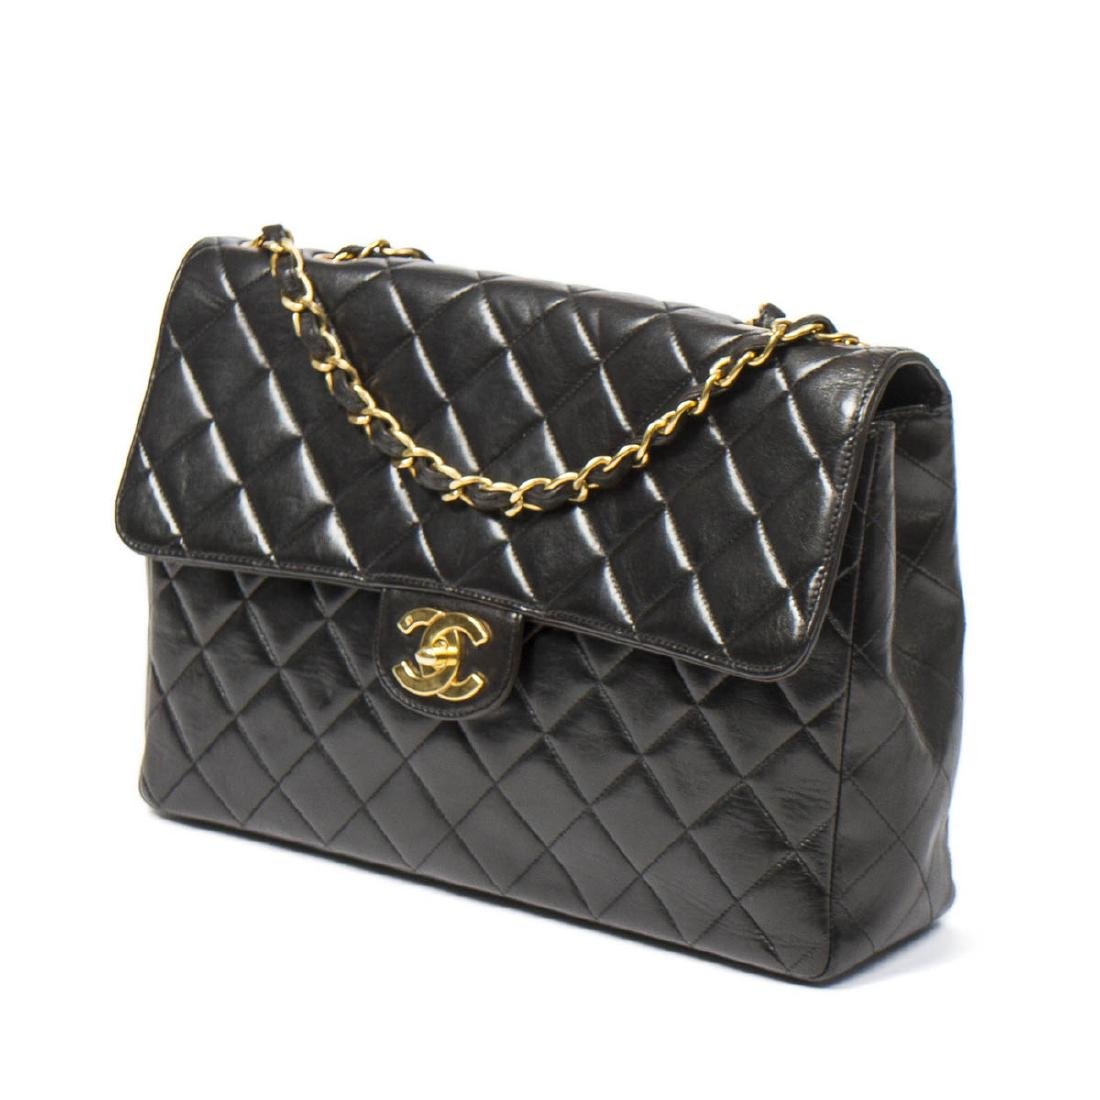 Chanel Maxi Flap in Black Quilted Leather - 2